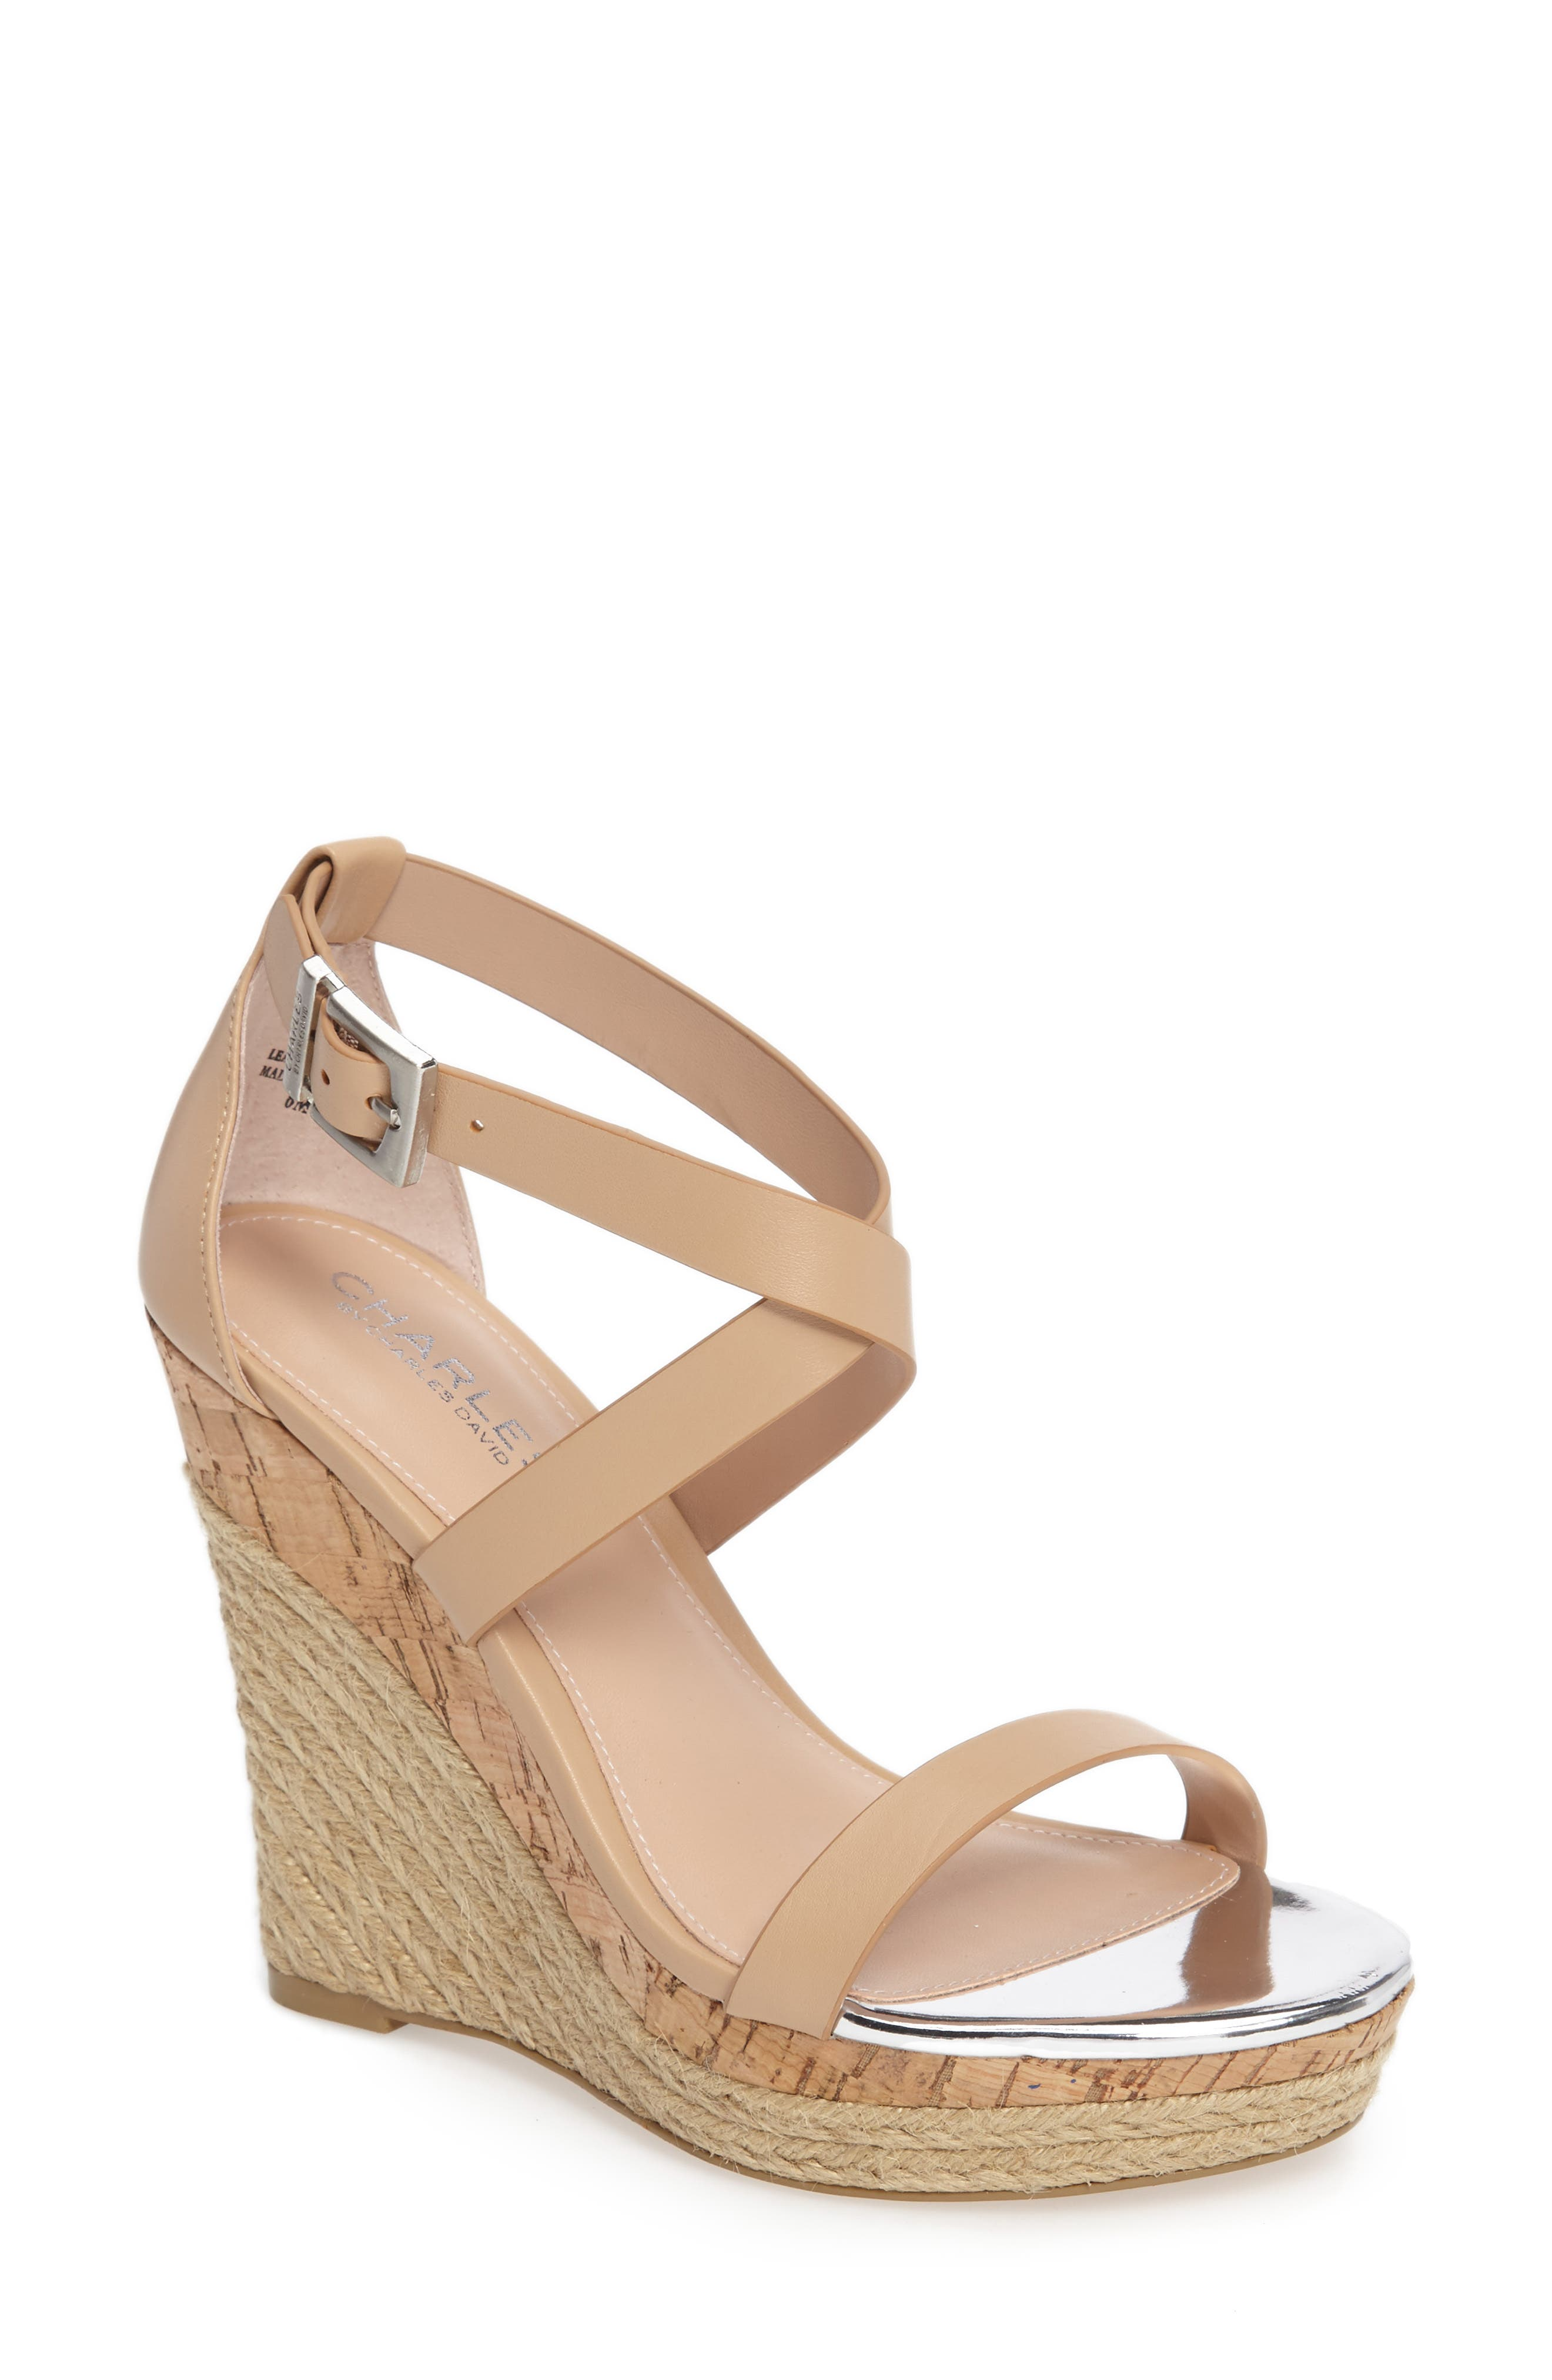 Aden Platform Wedge Sandal,                         Main,                         color, Nude Leather